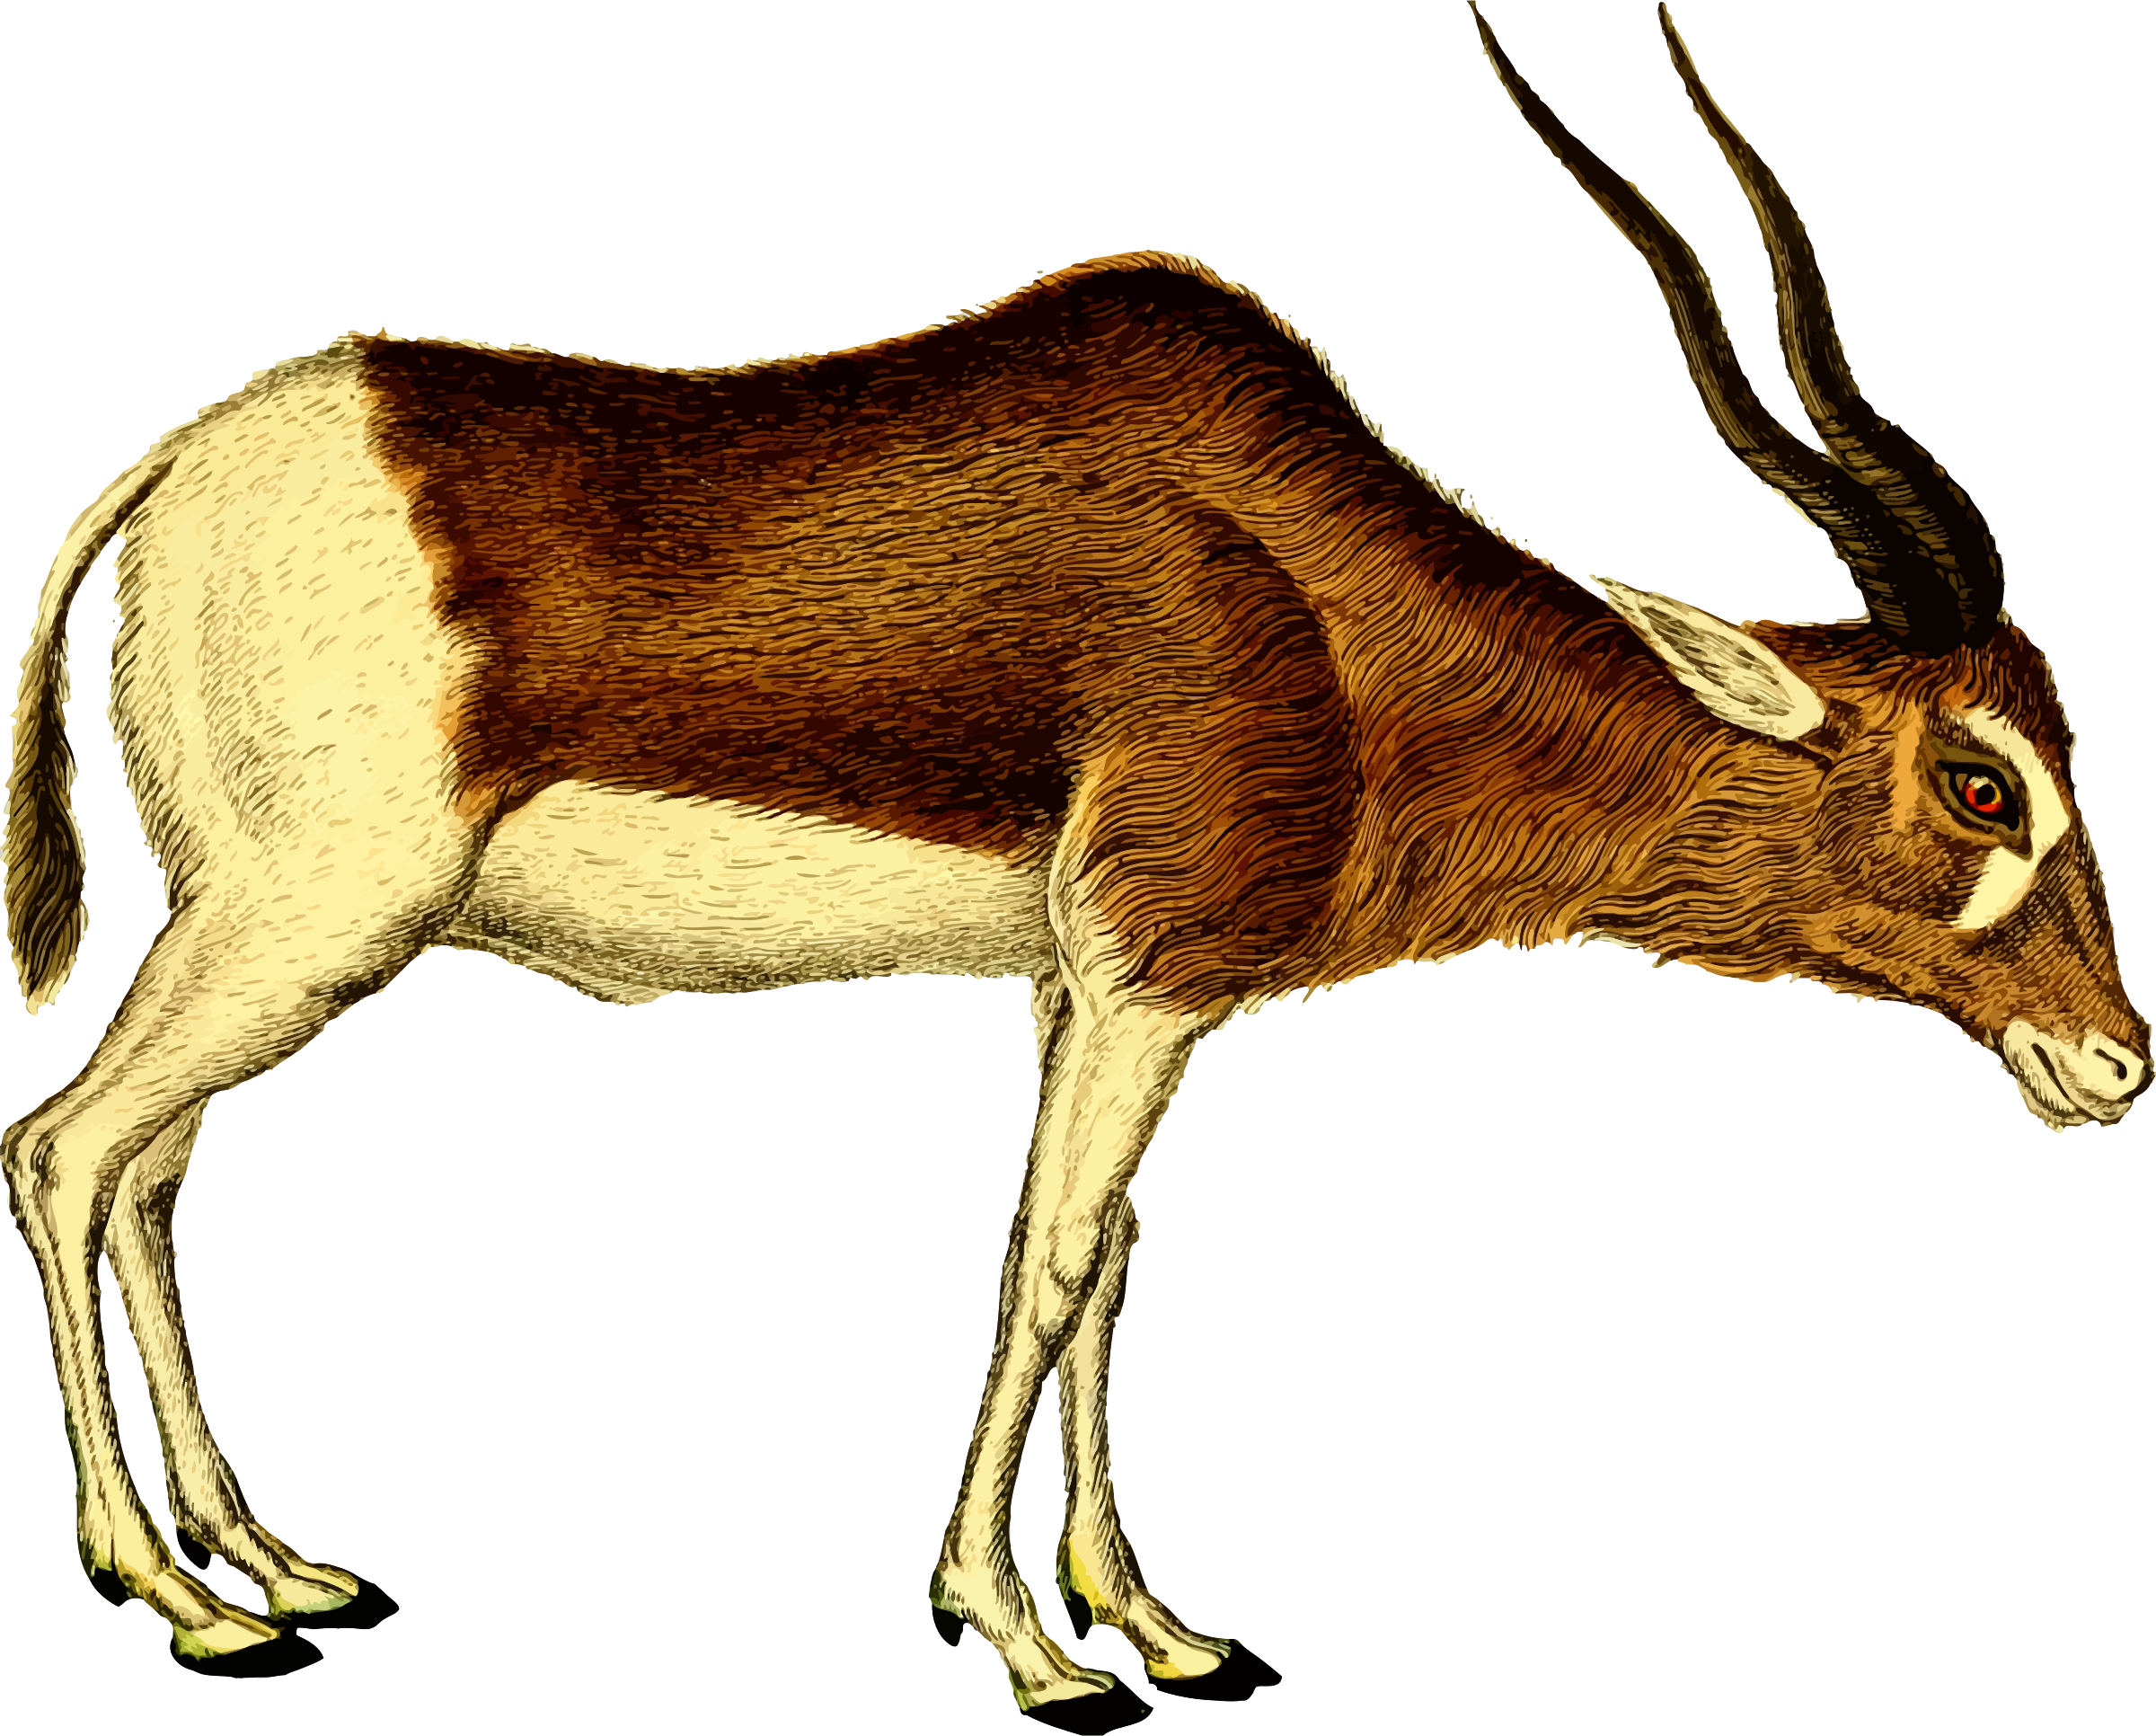 Antelope 2 (isolated) by Firkin